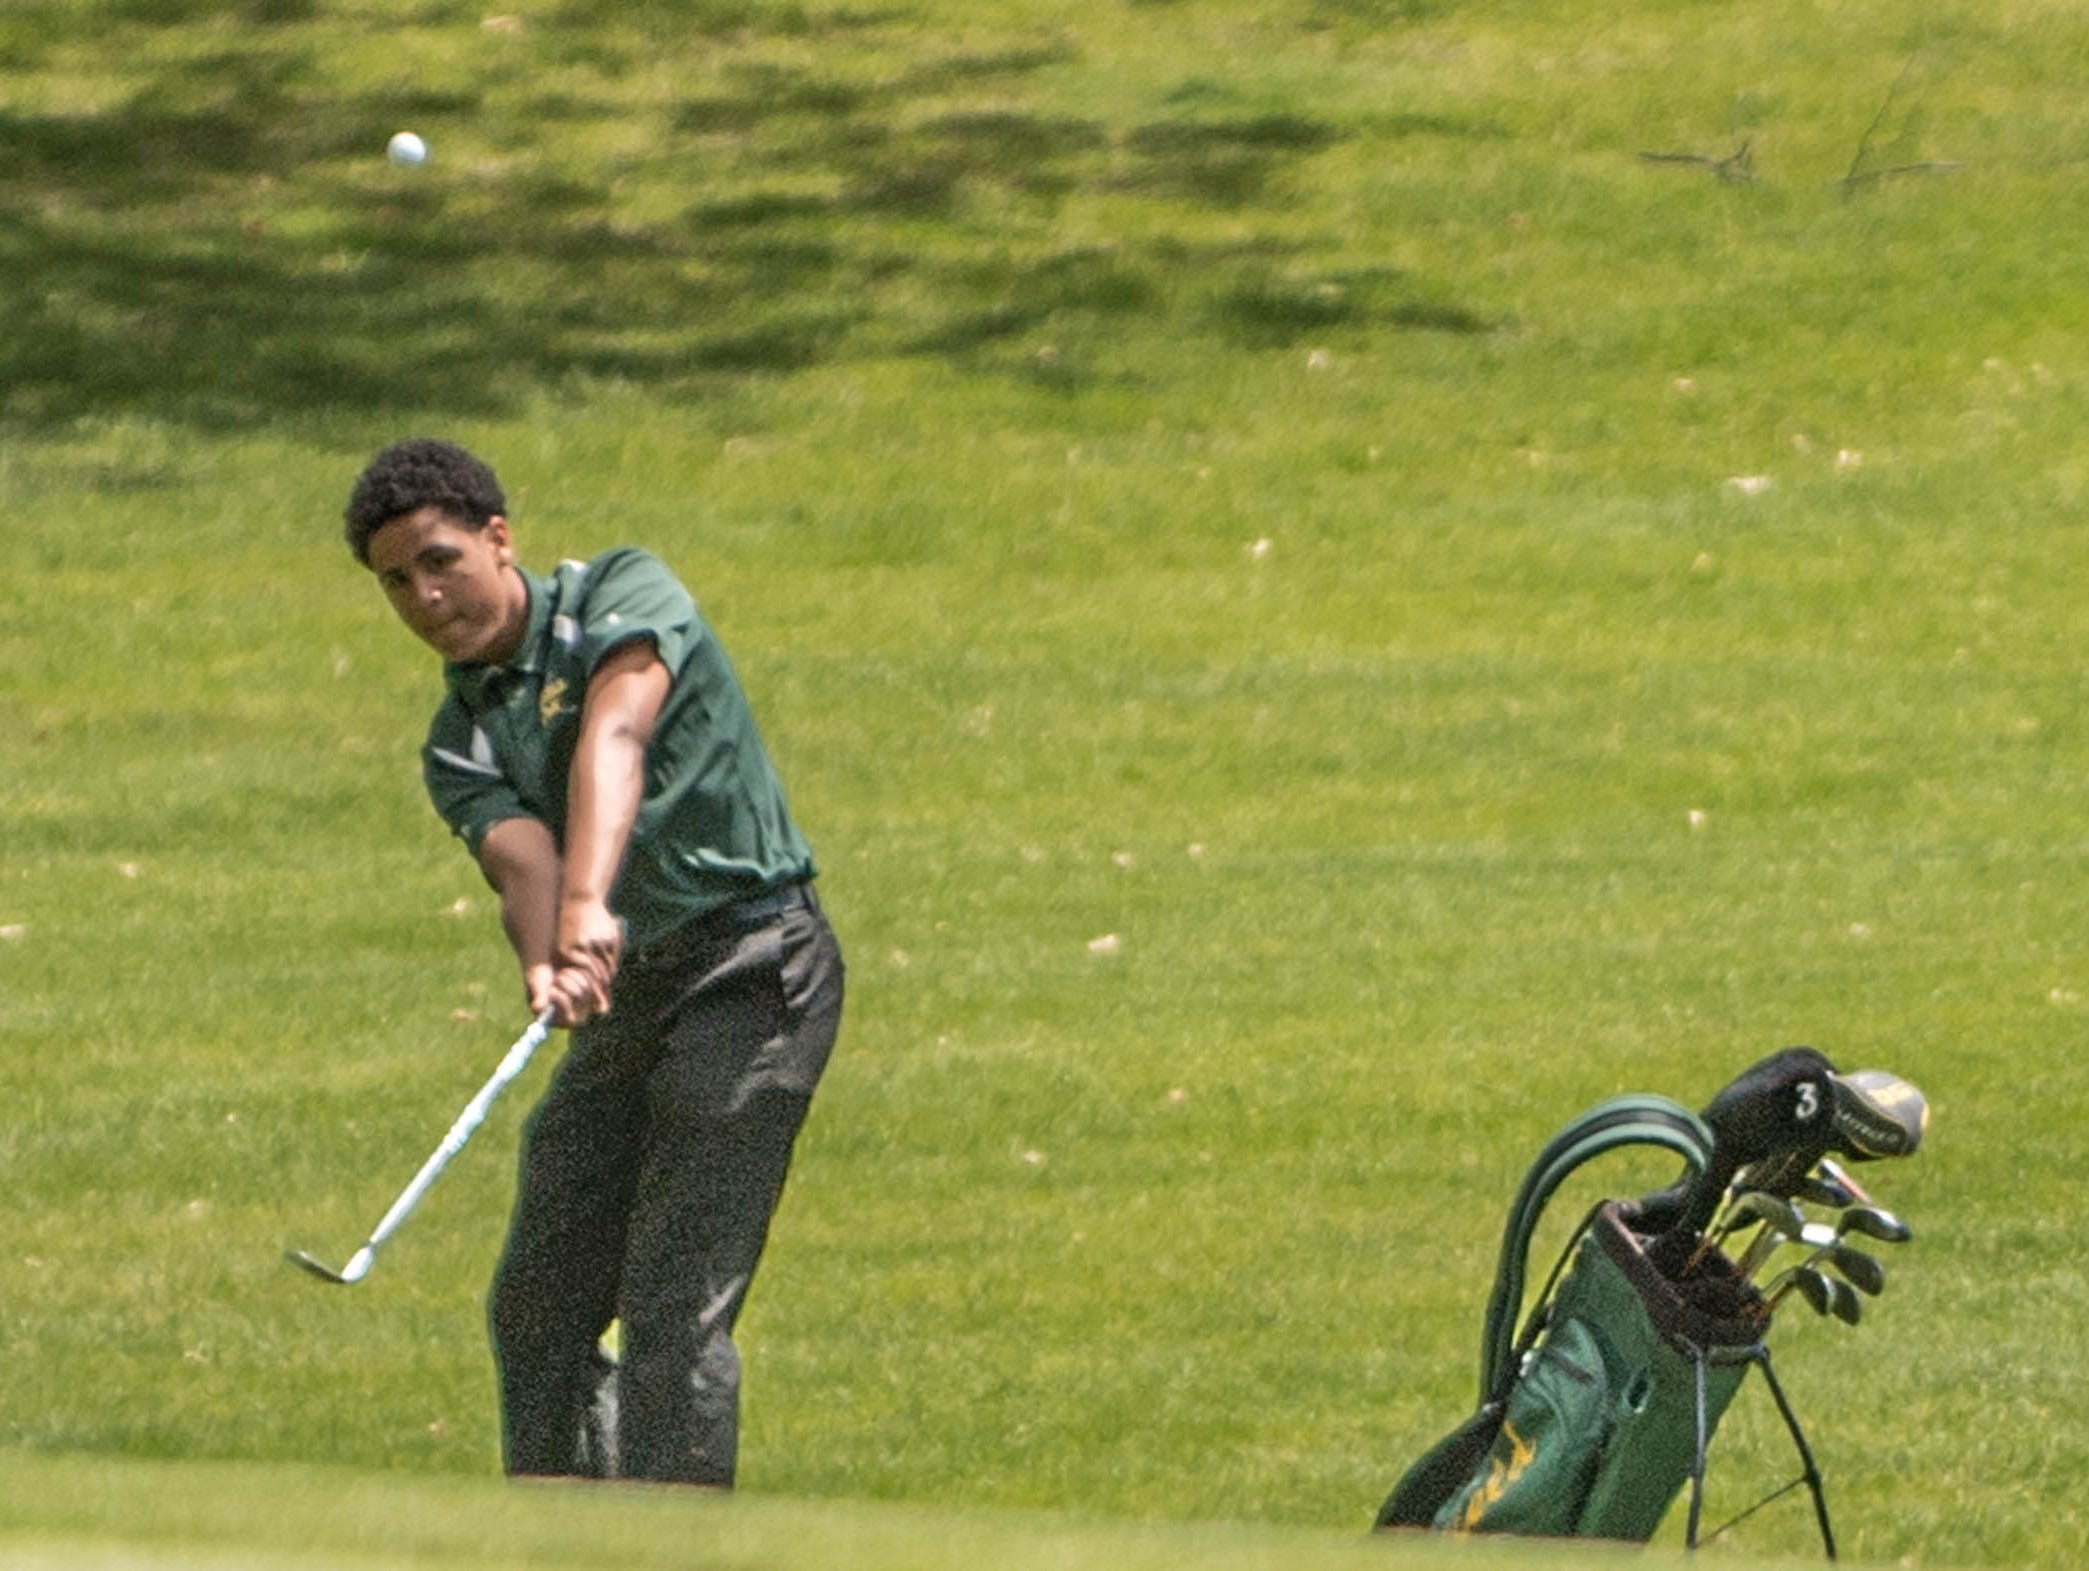 Pennfield sophmore Jaydon Butson chips to the green during All-City Golf Tournament at Riverside Golf Club on Friday.